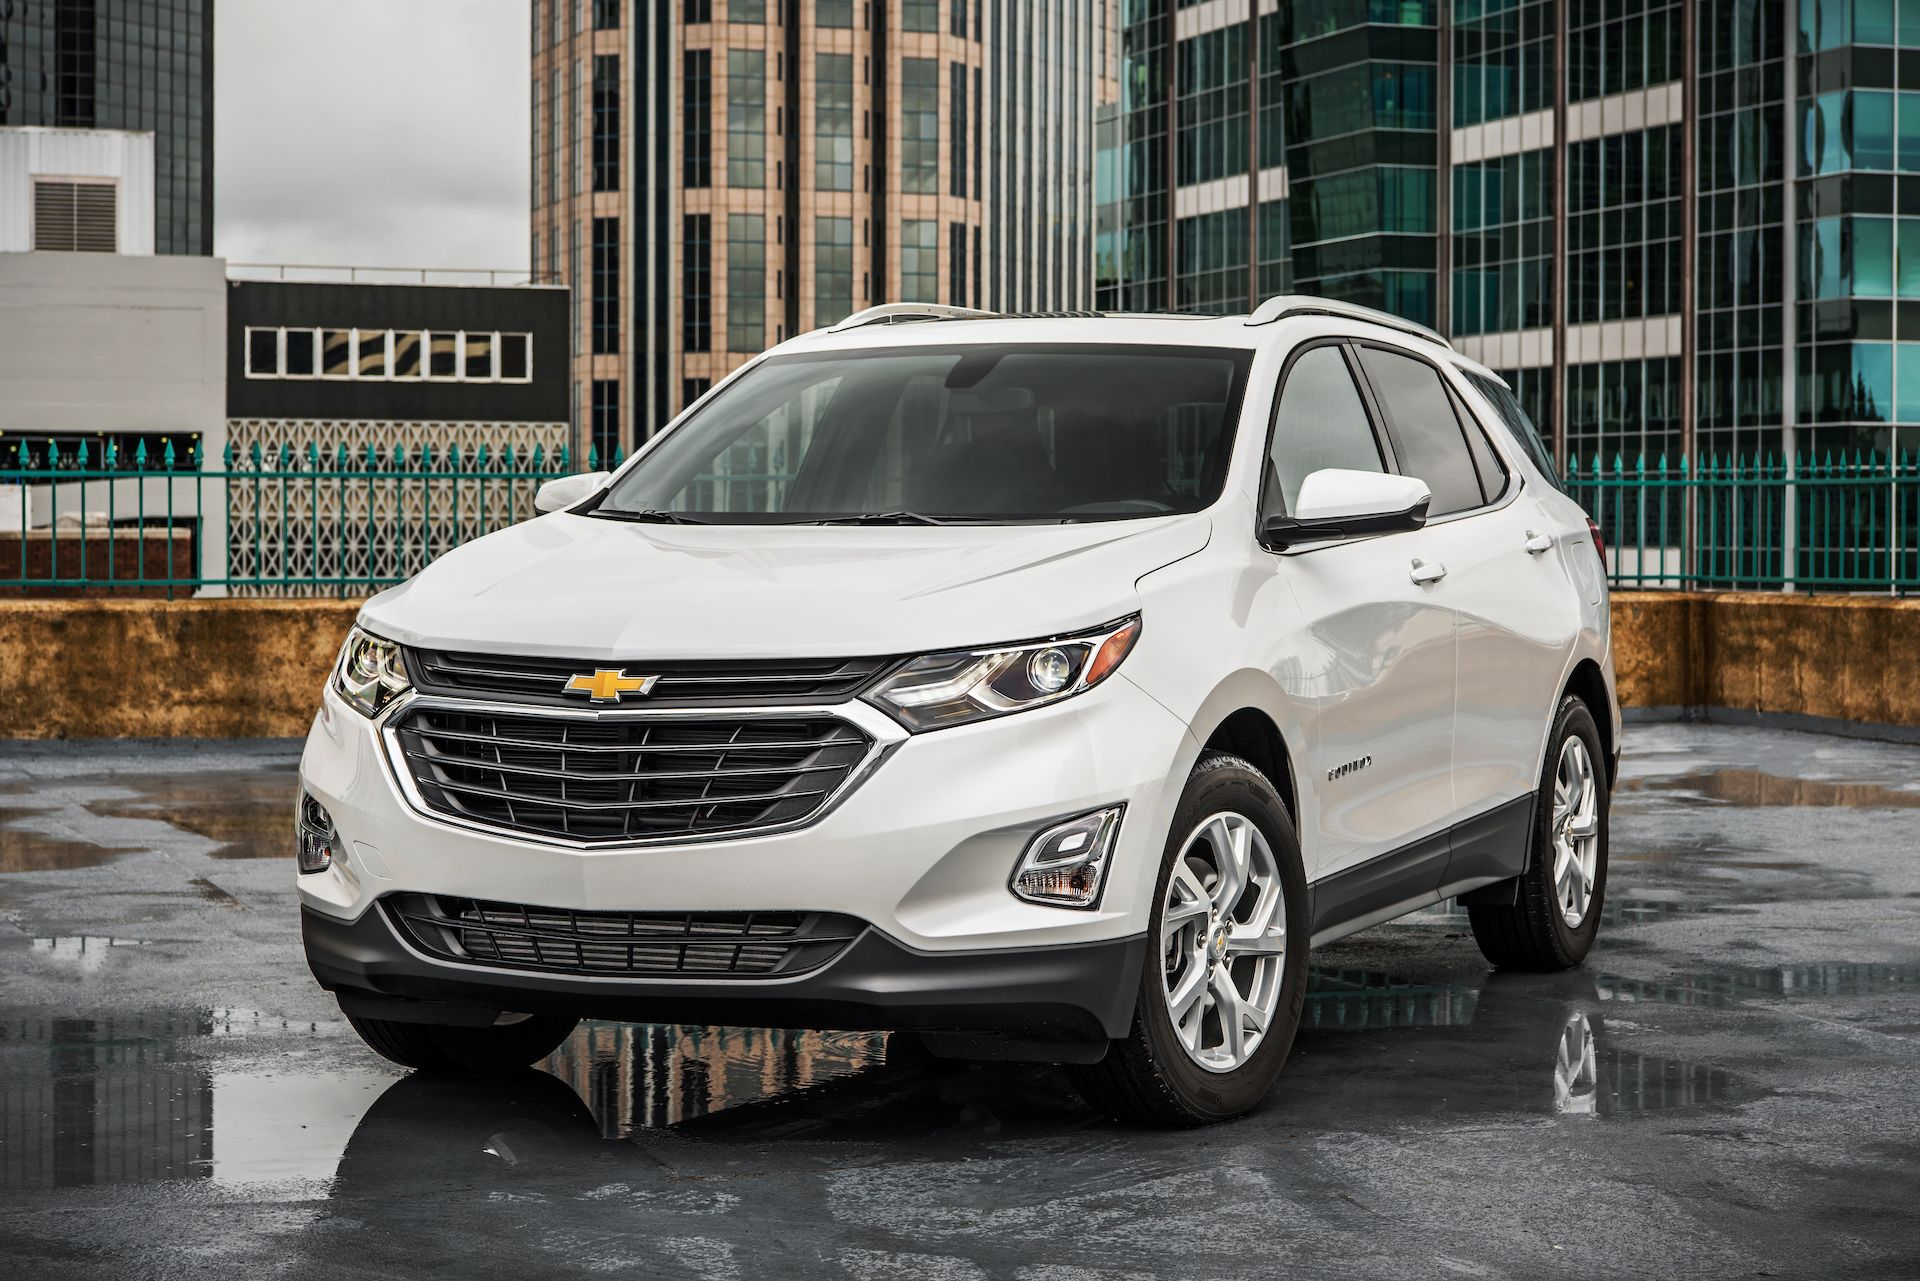 The 2018 Chevrolet Equinox Chevy Review Ratings Specs Prices And Photos The Car Connection Chevy Equinox 2018 Chevy Equinox Chevrolet Equinox